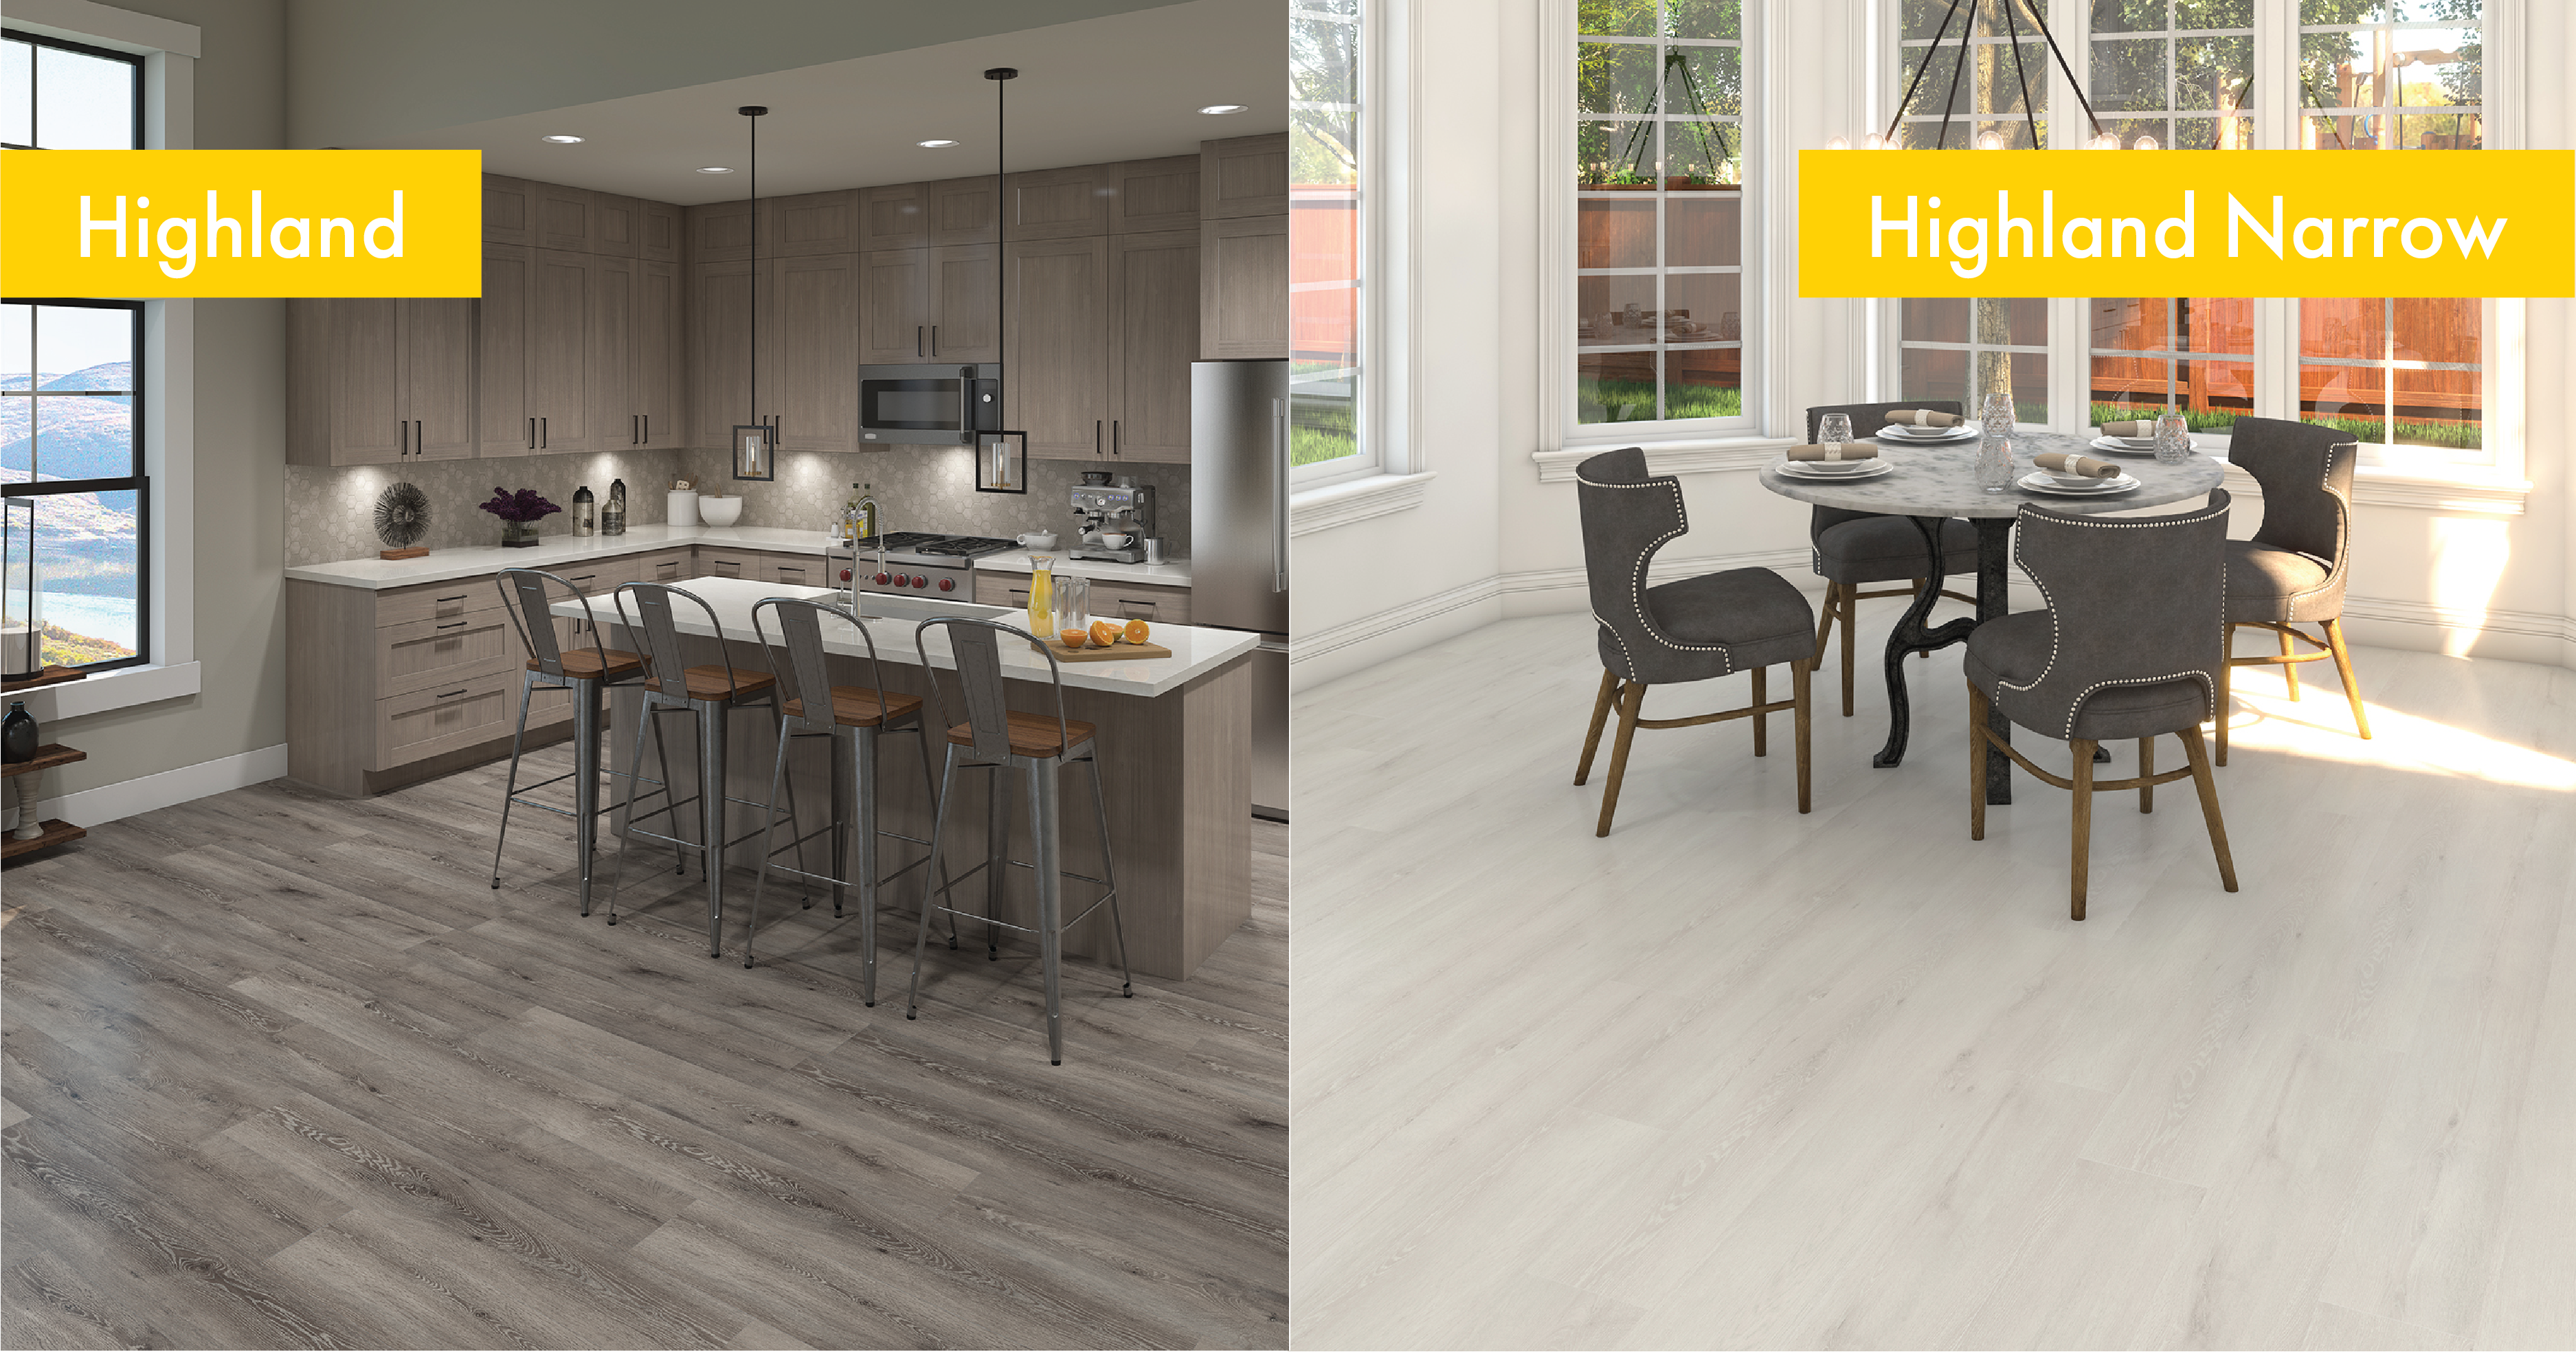 Kitchens featuring Highland and Highland Narrow Collections